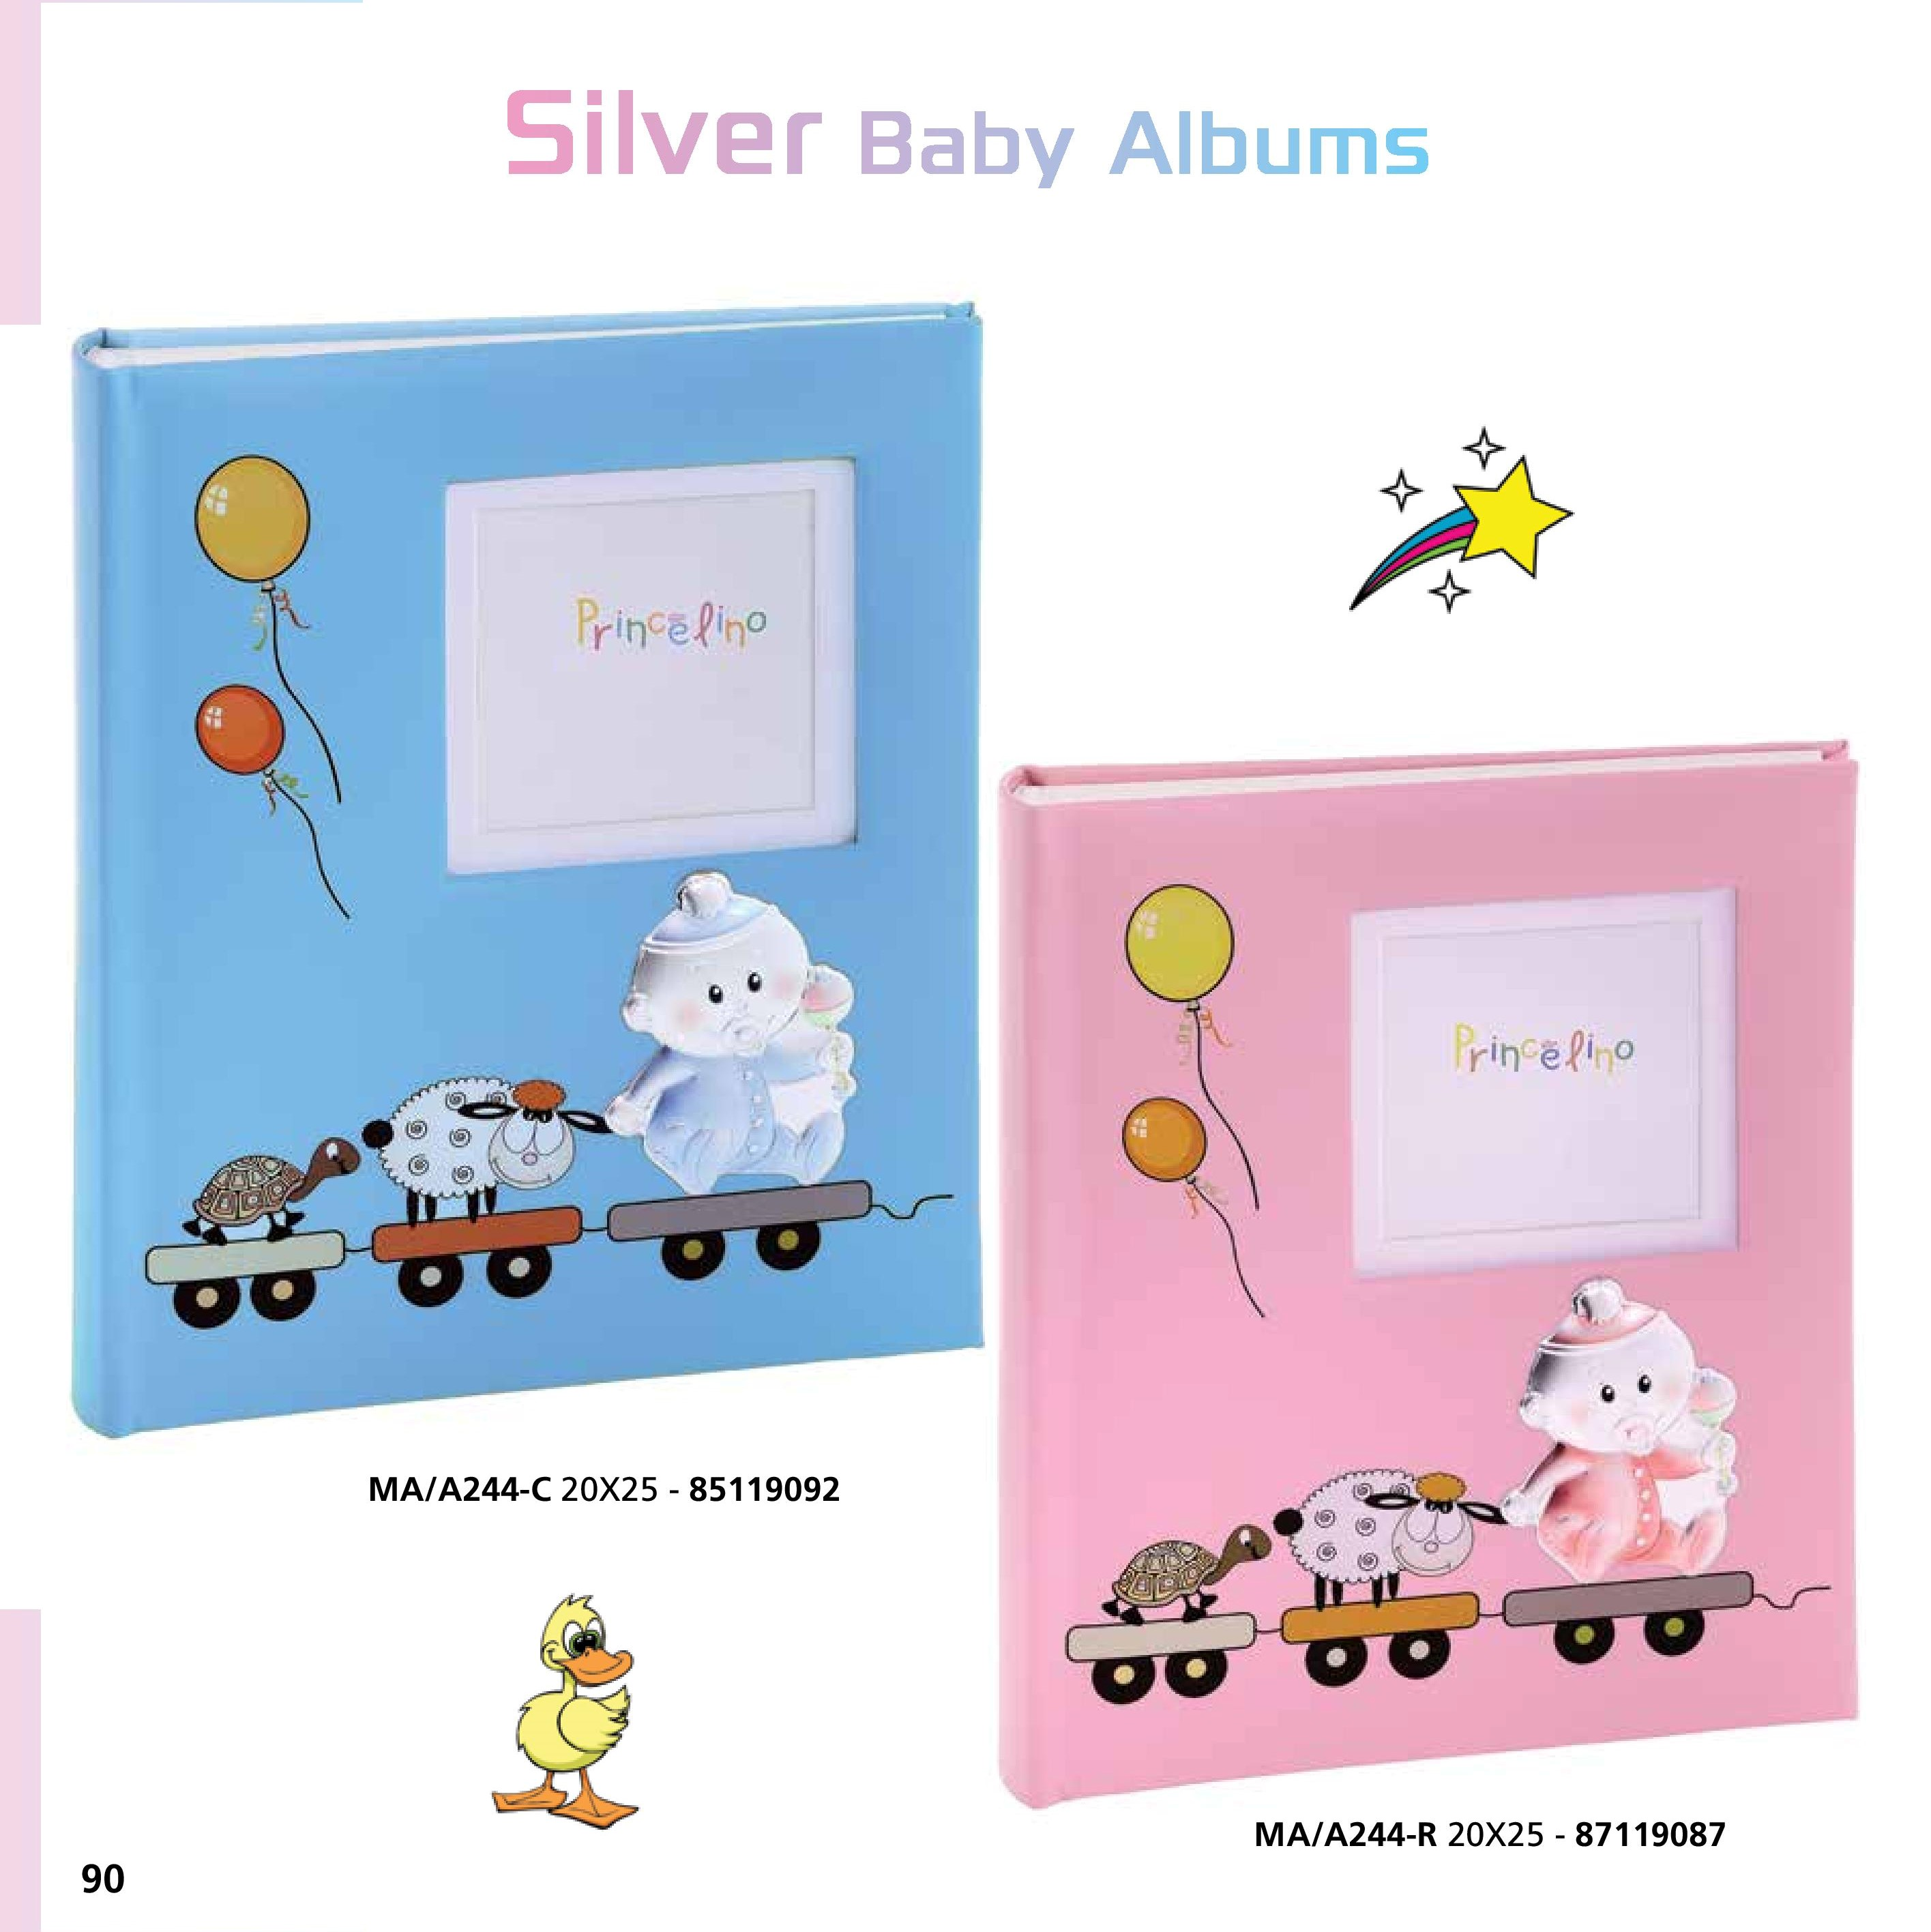 https://gifts4you.gr/wp-content/uploads/2018/11/Silver-Baby-albums-page-007-1.jpg